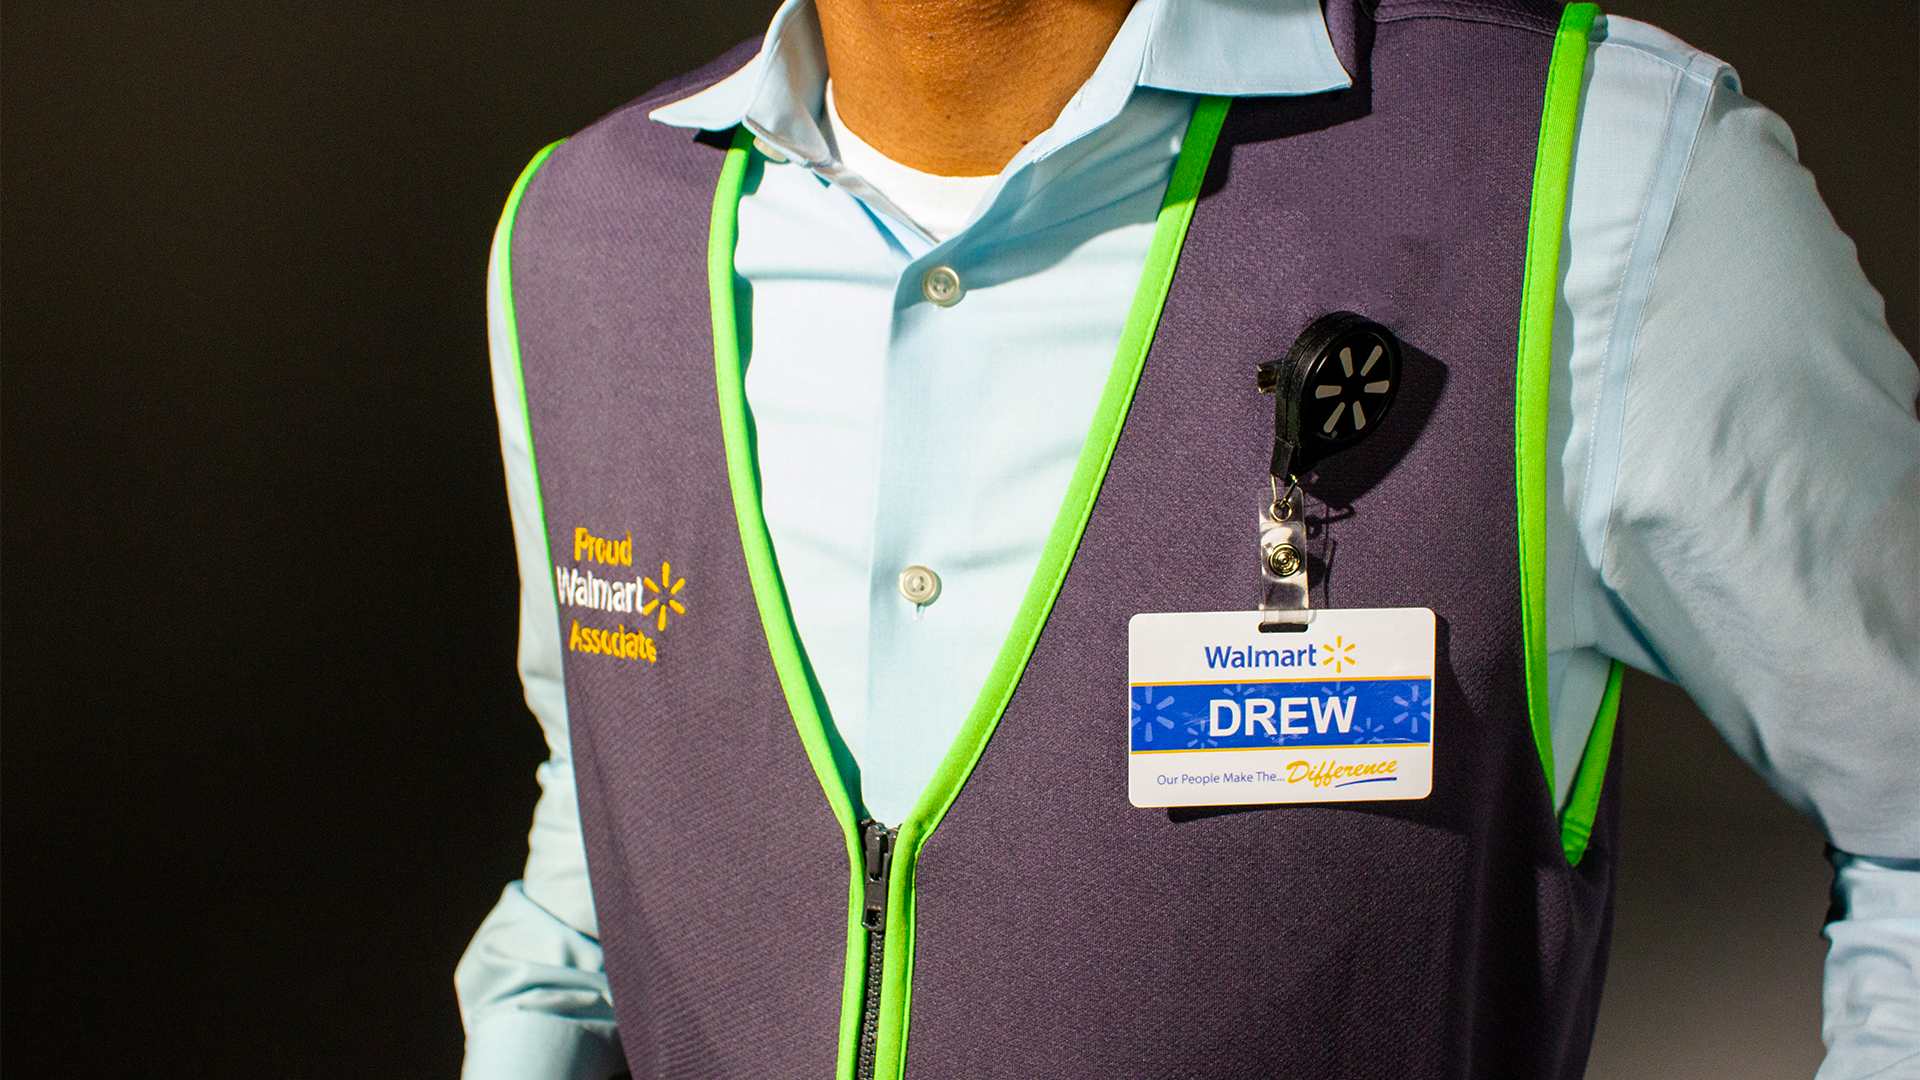 Associate wearing new green vest showing close up